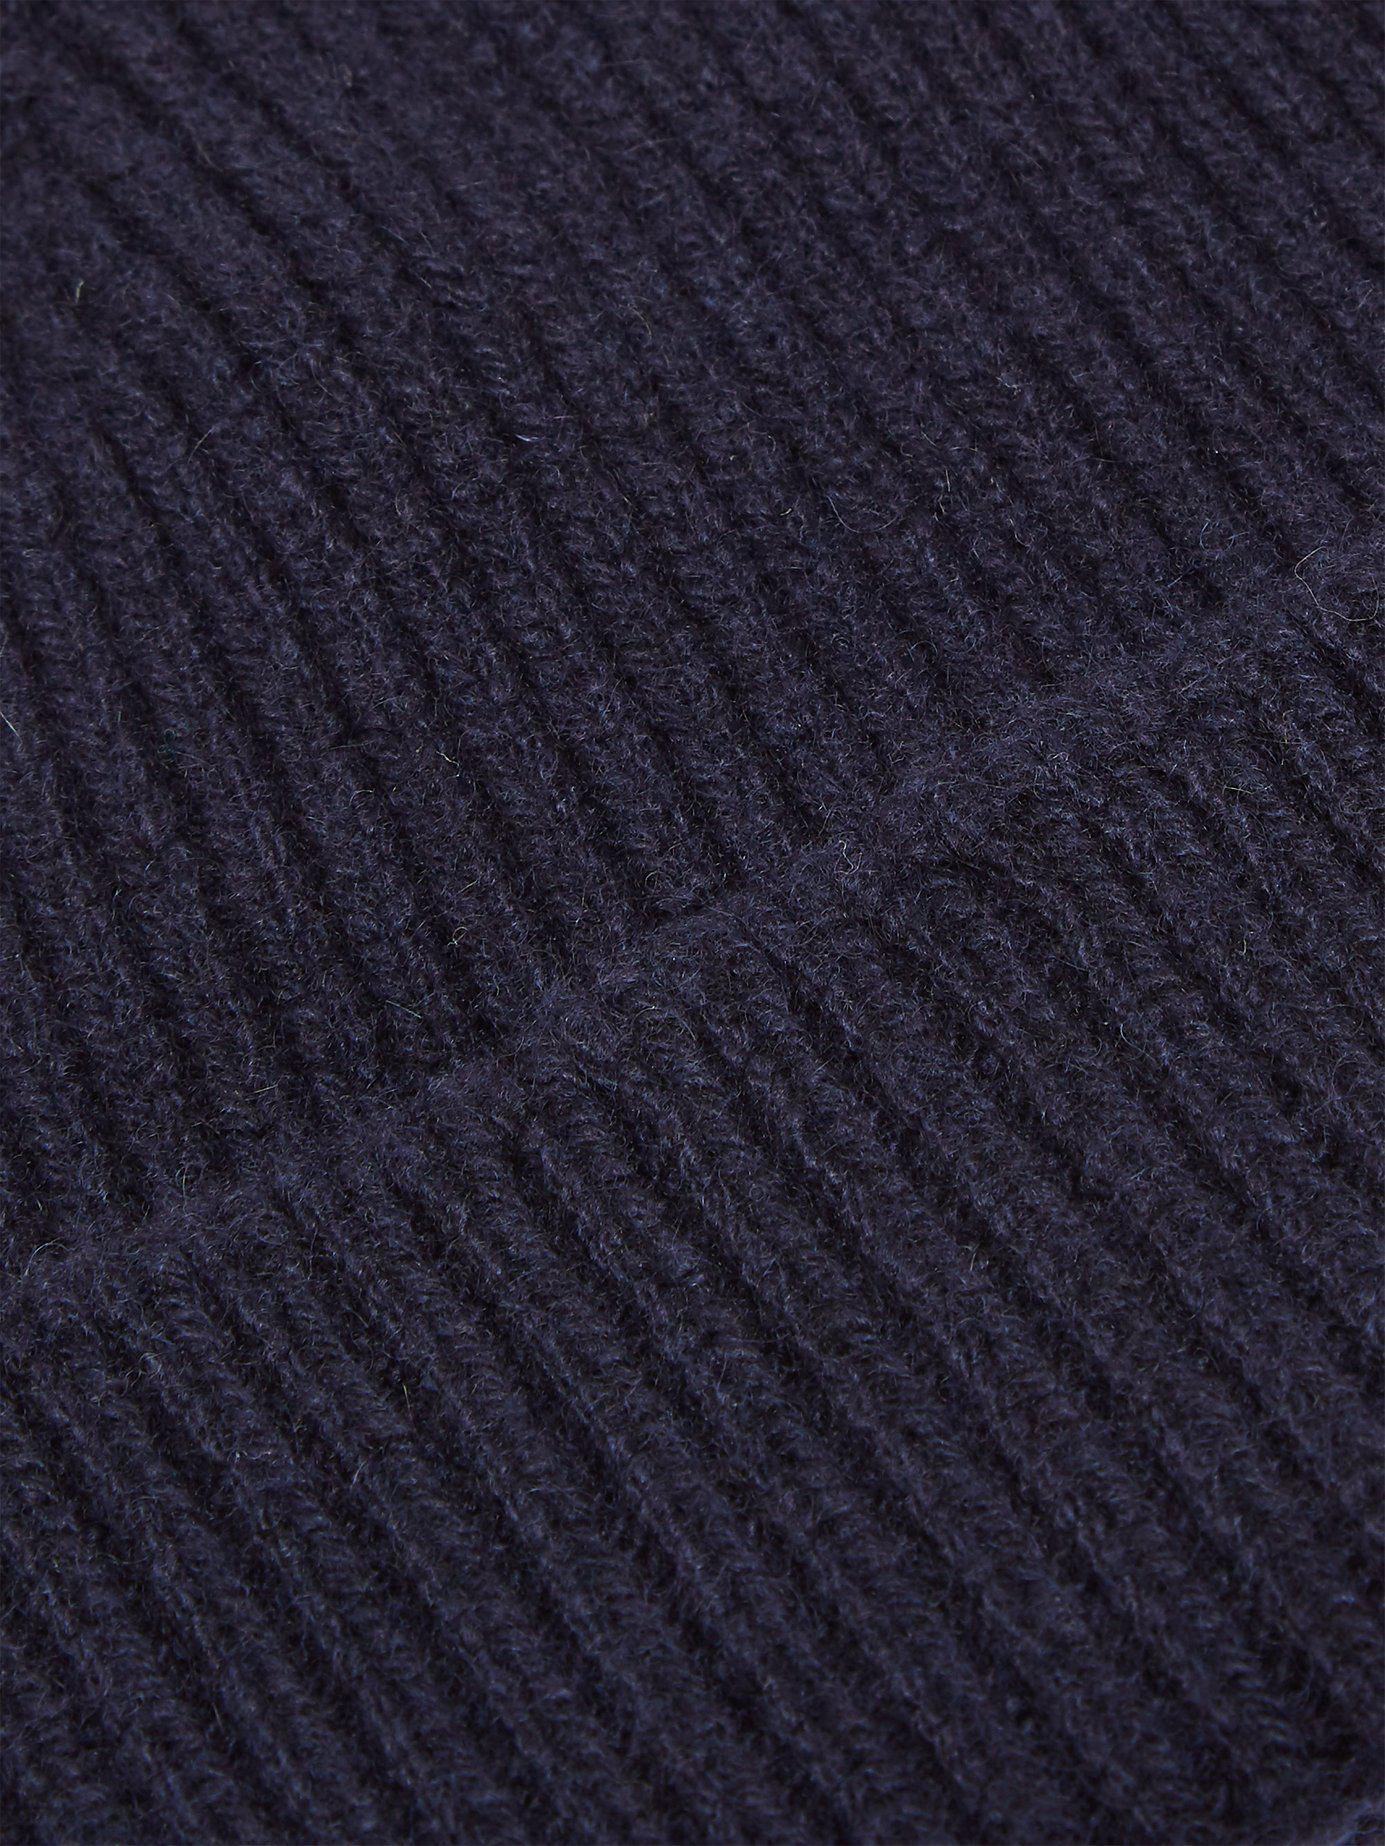 6fb44b0bdb1 Lyst - Paul Smith Cashmere And Merino Wool Blend Beanie Hat in Blue for Men  - Save 6.666666666666671%